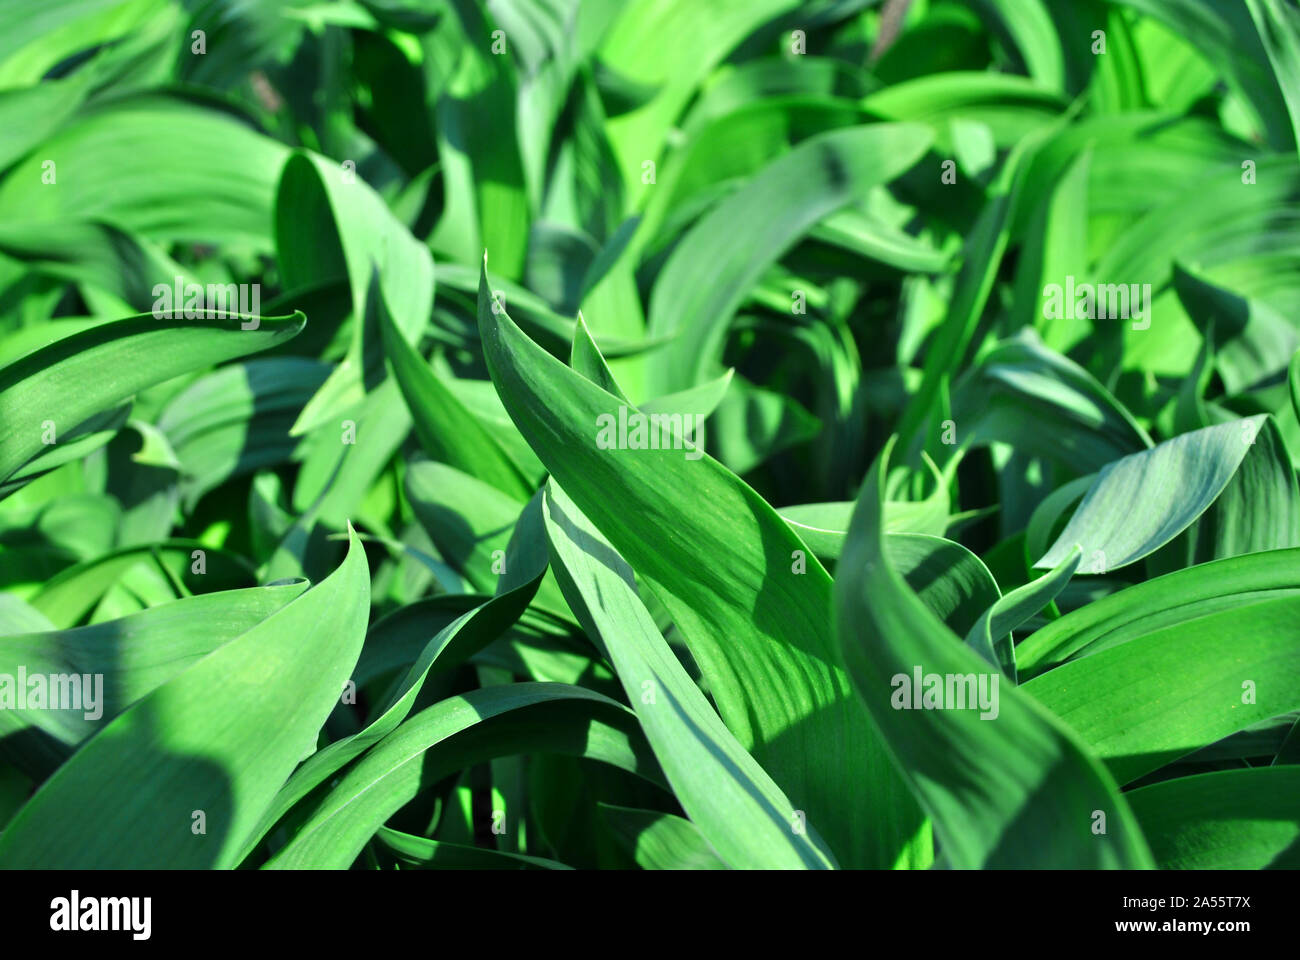 Bright green growing iris leaves close up, natural organic background top view Stock Photo